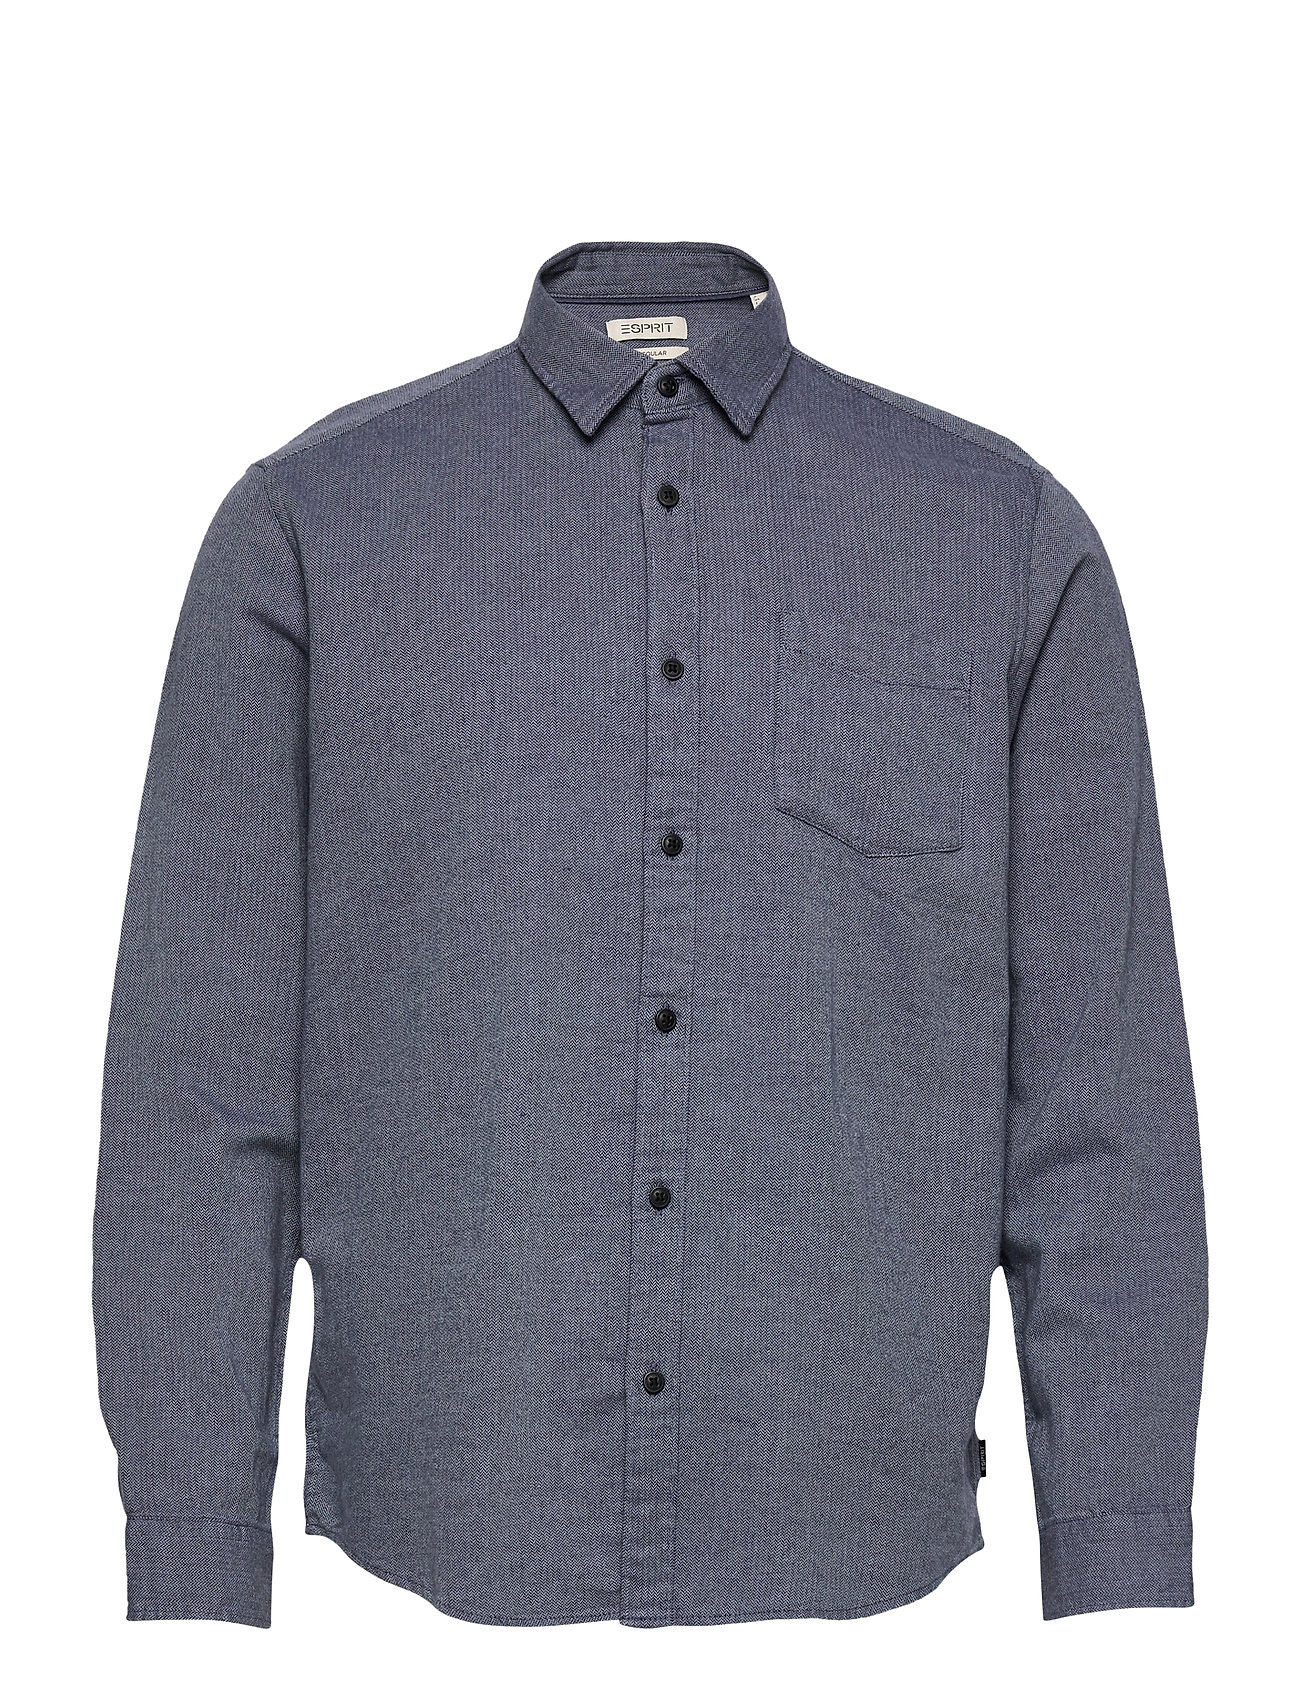 Image of Shirts Woven Skjorte Casual Blå Esprit Casual (3462445557)